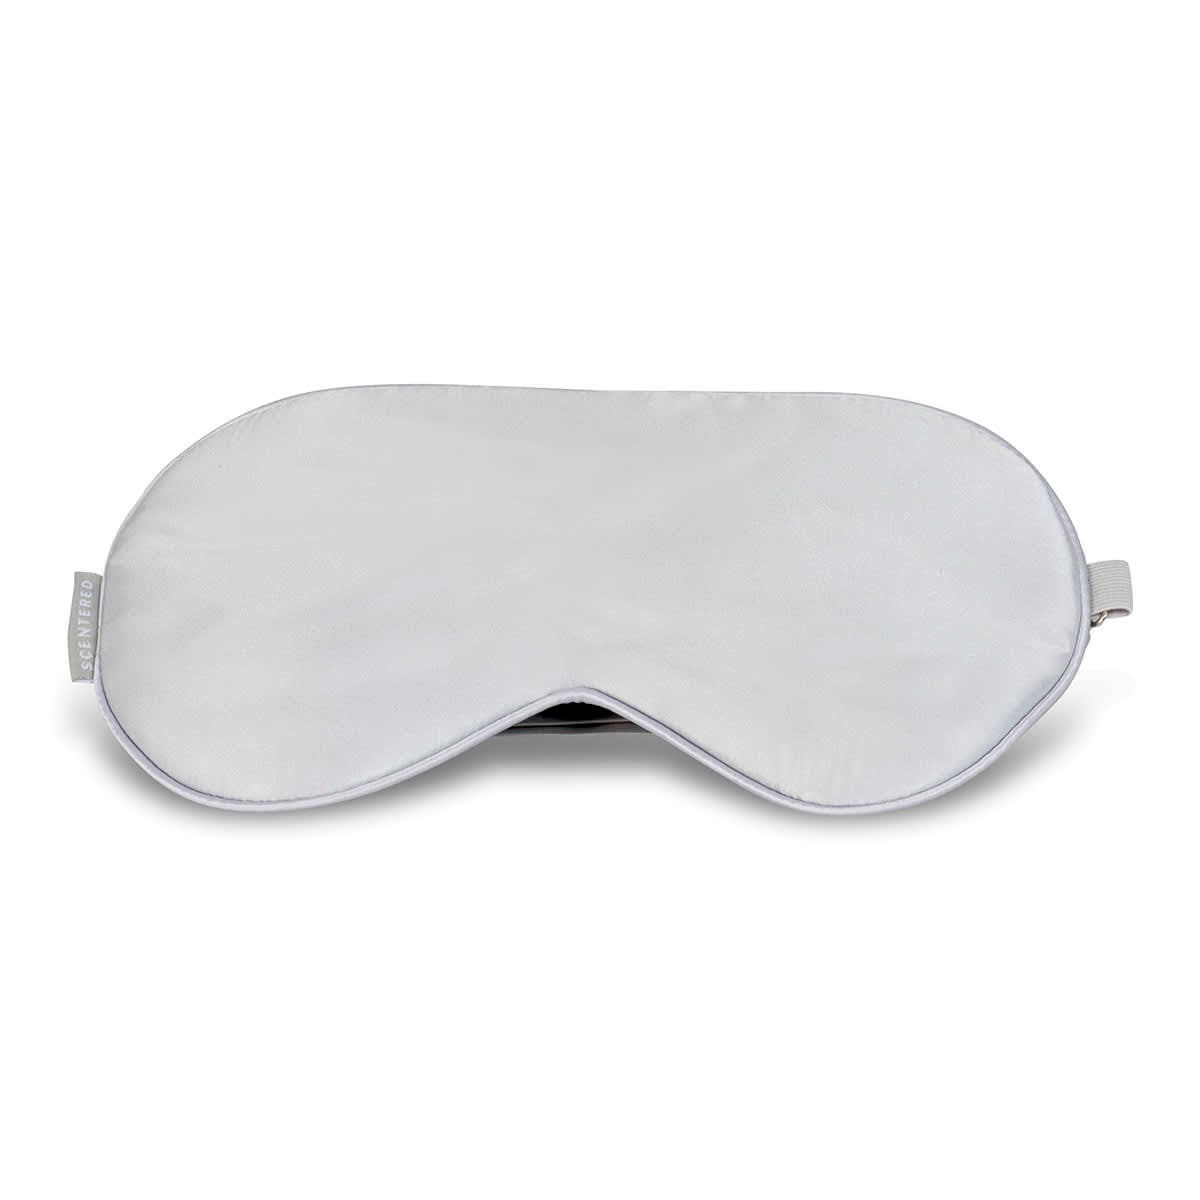 Scentered - Luxury Wellbeing Sleep Essential Kit eye mask